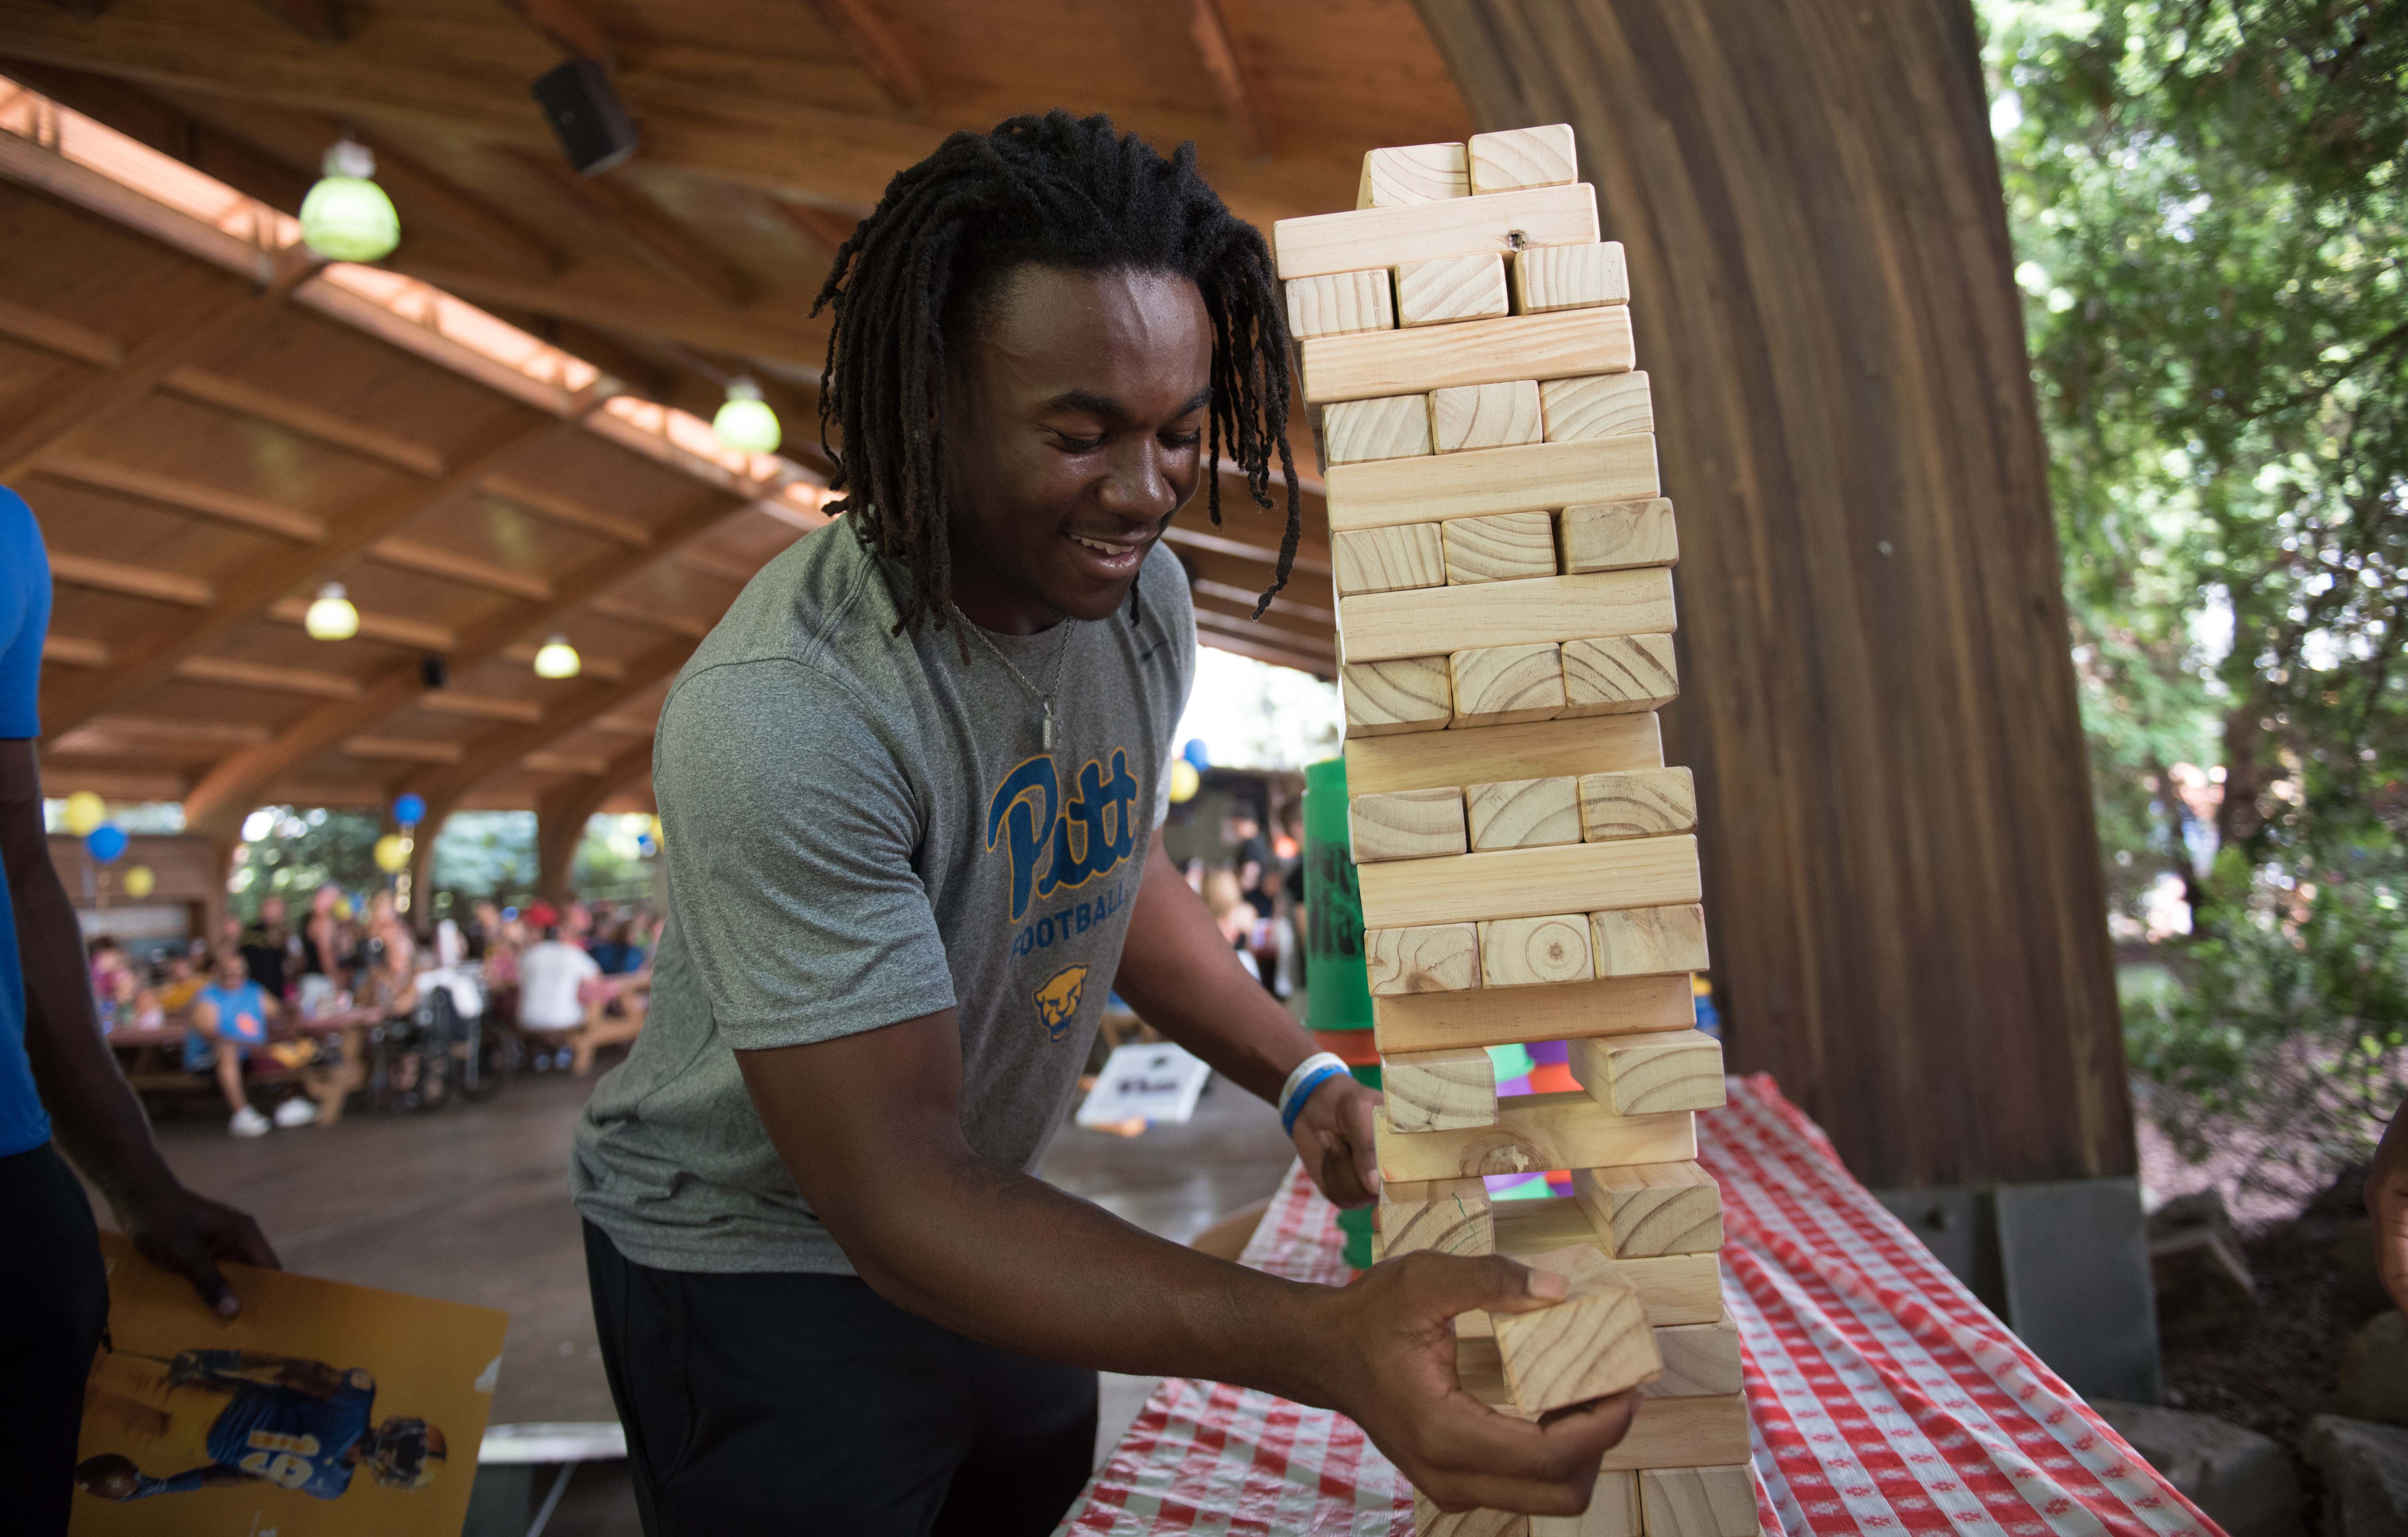 Man plays giant Jenga game